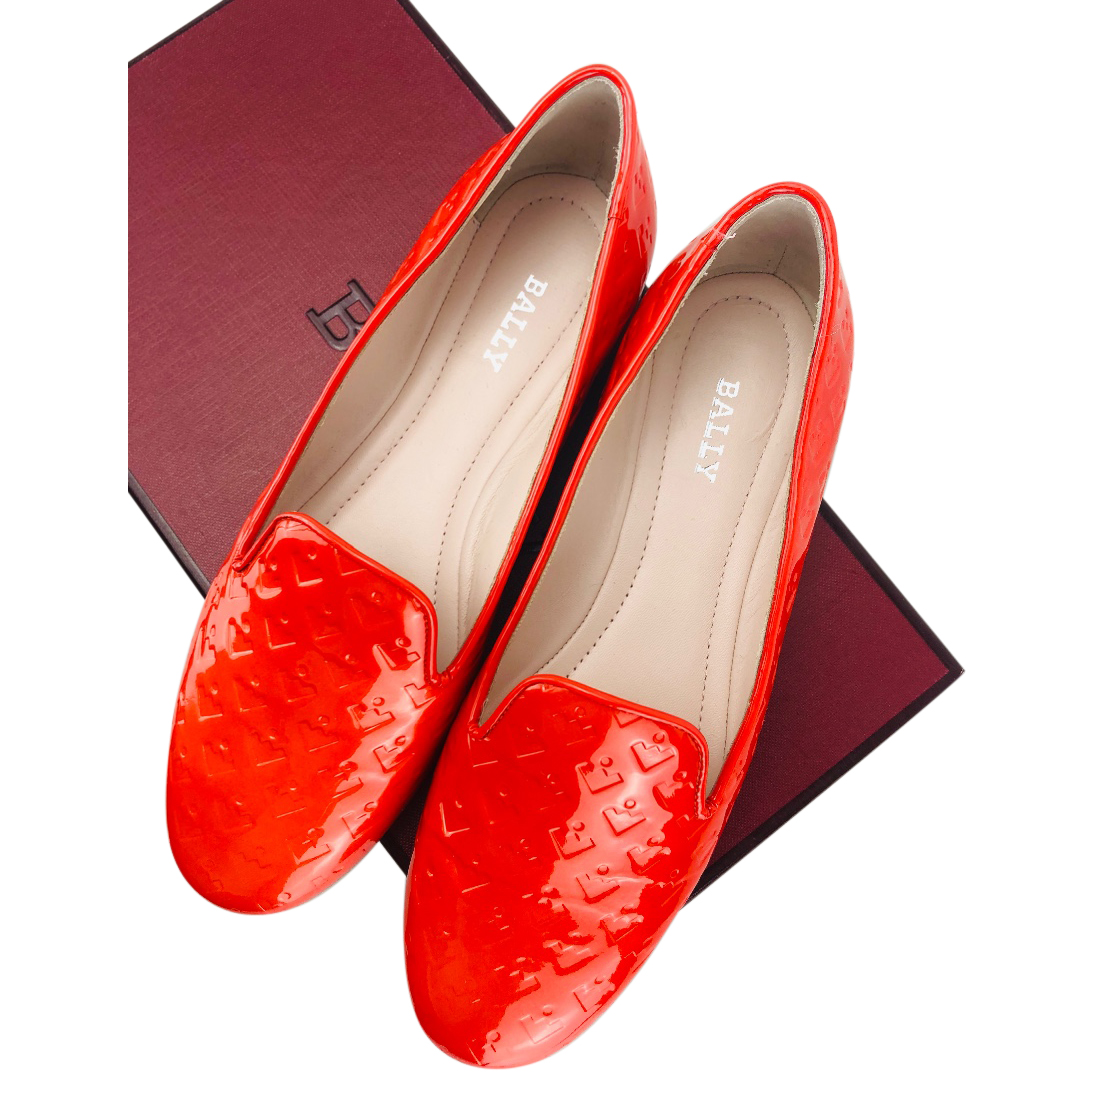 Bally Red Berenice Ballerina Flats